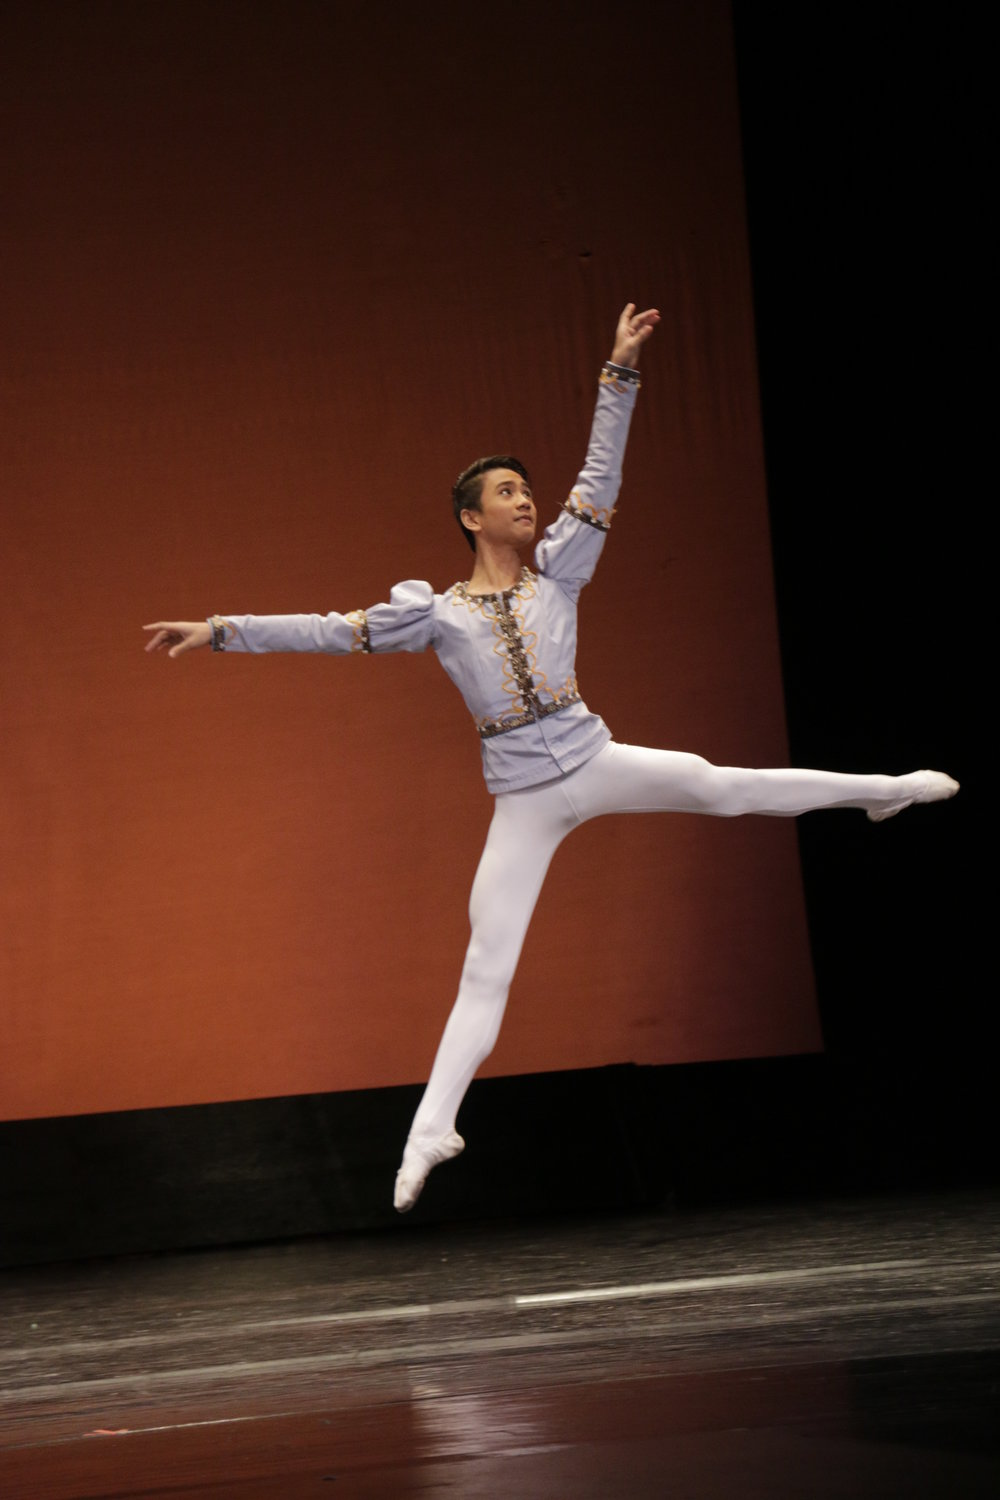 Despite problems with the music, Brian clinched the 3rd prize in the    CCP Ballet Competition   's Junior category. Photo by Kiko Cabuena/CCP